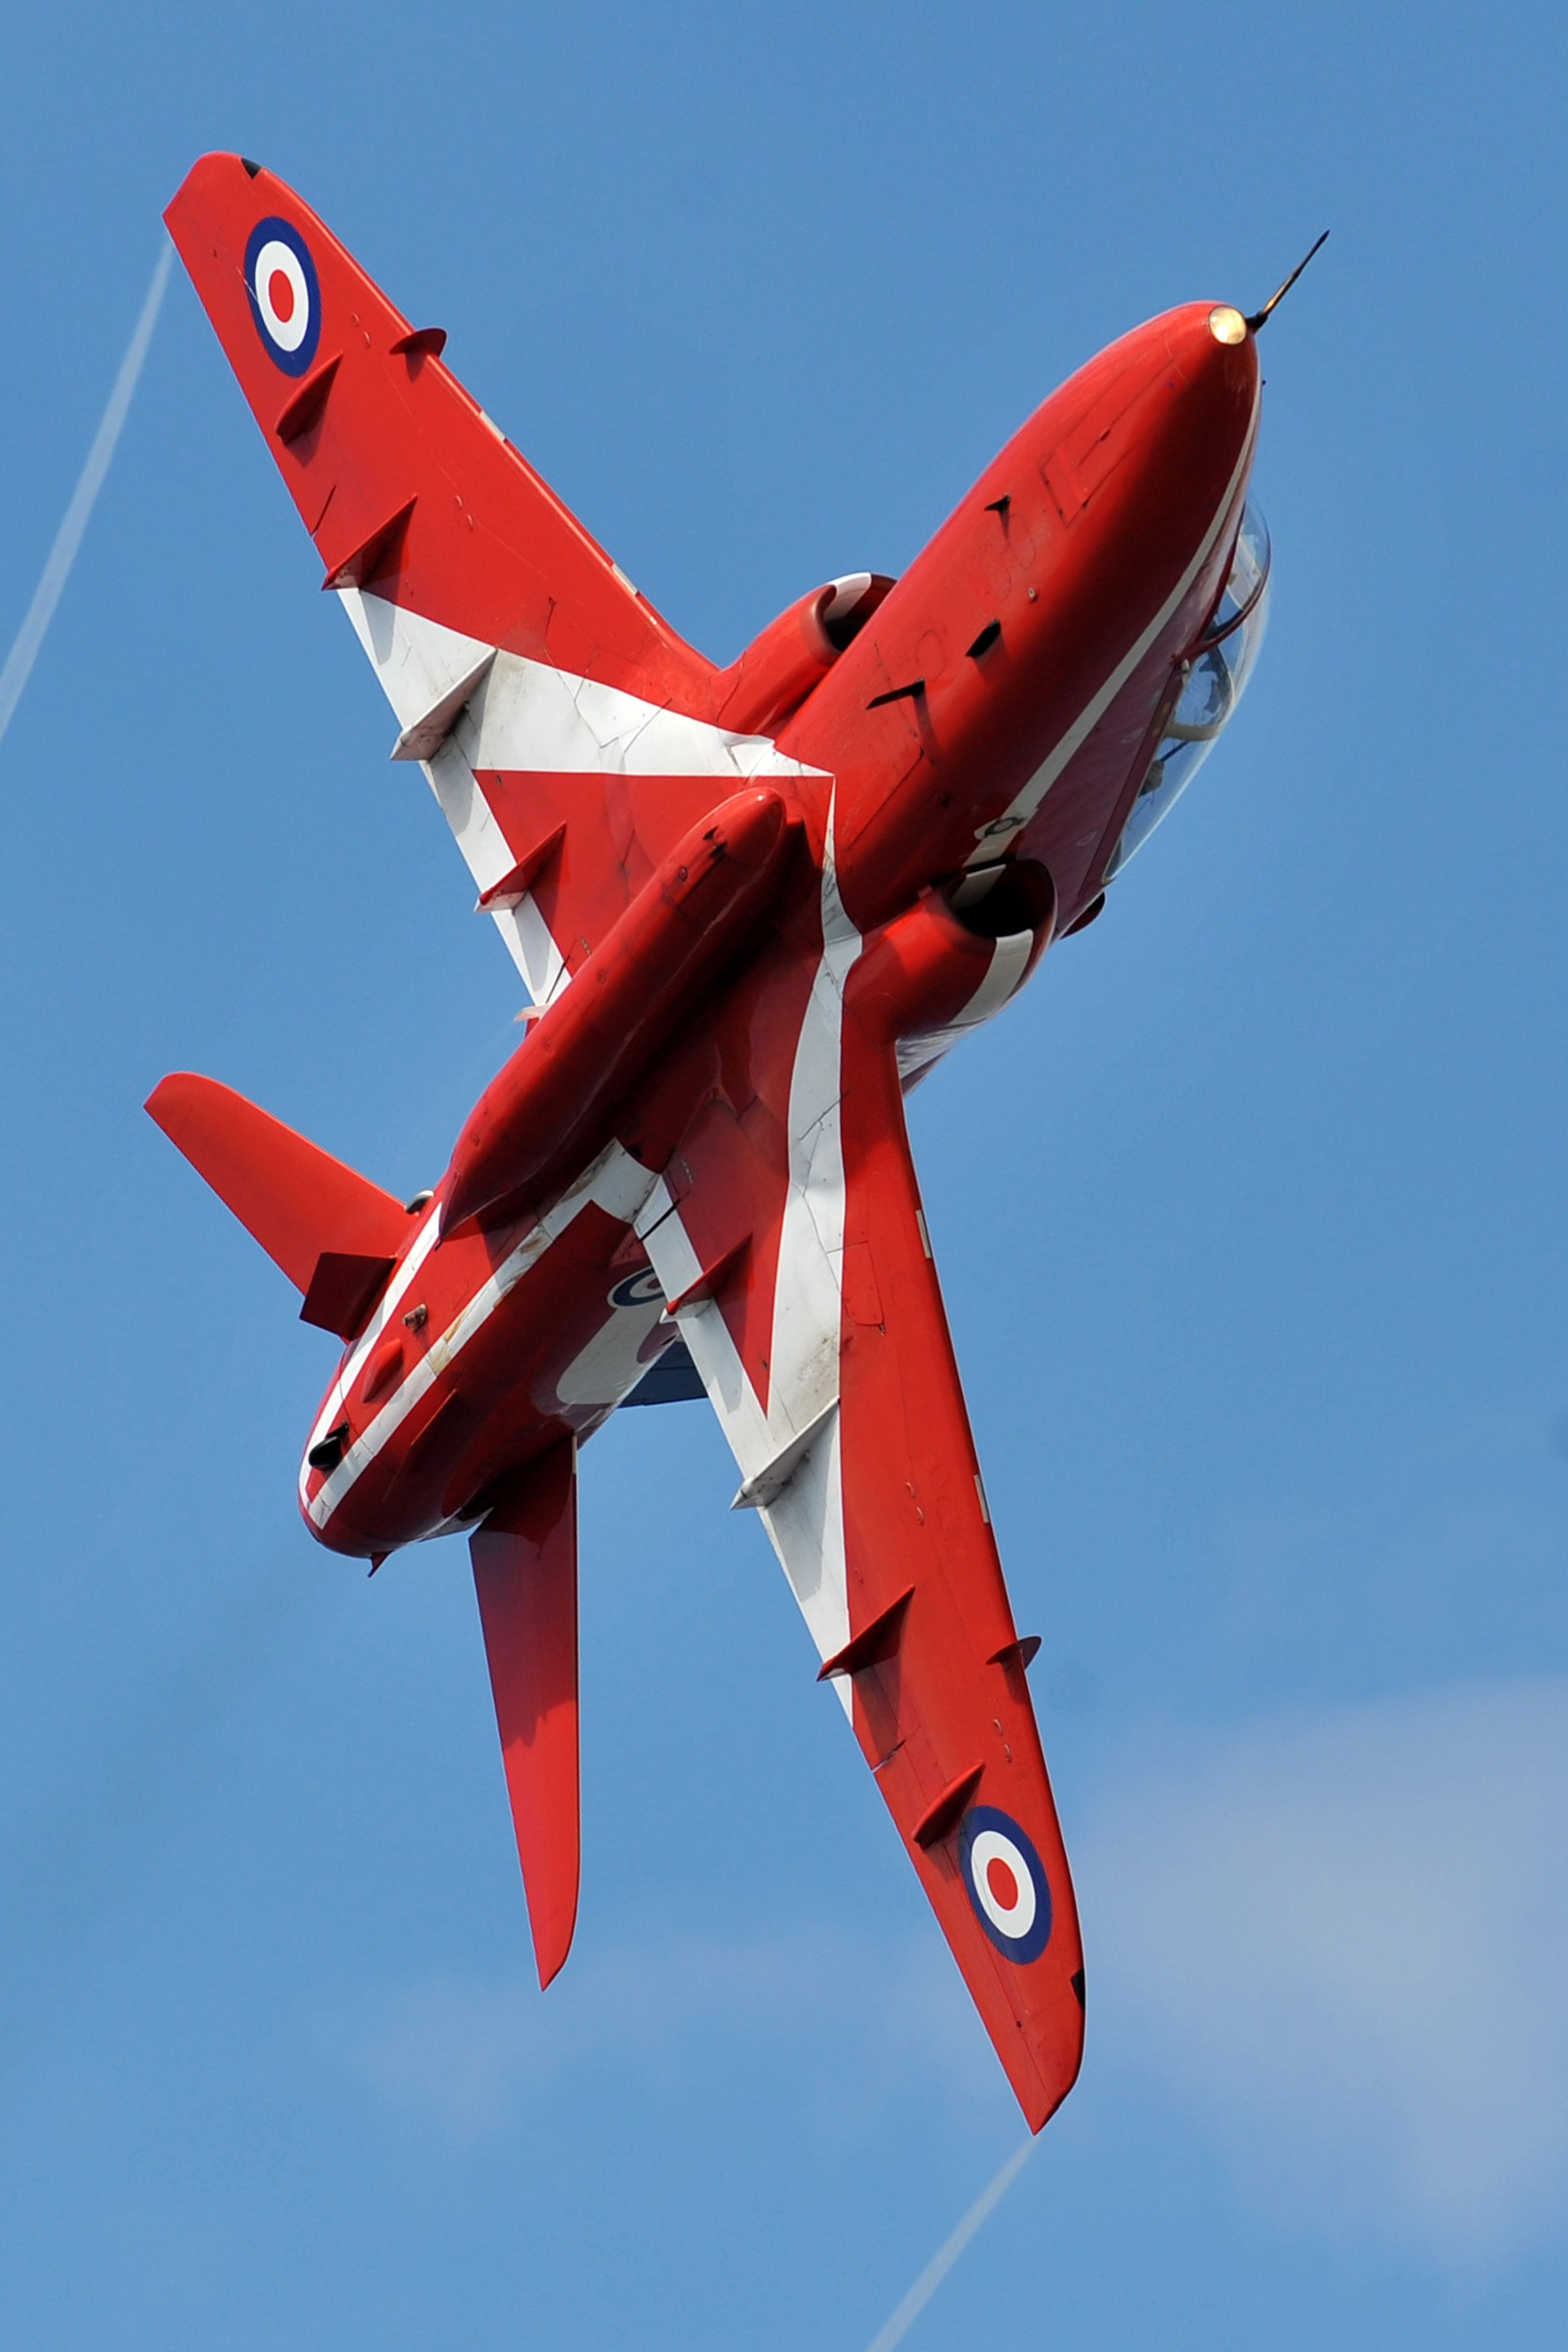 Red Arrows Red arrow, Red, Royal air force